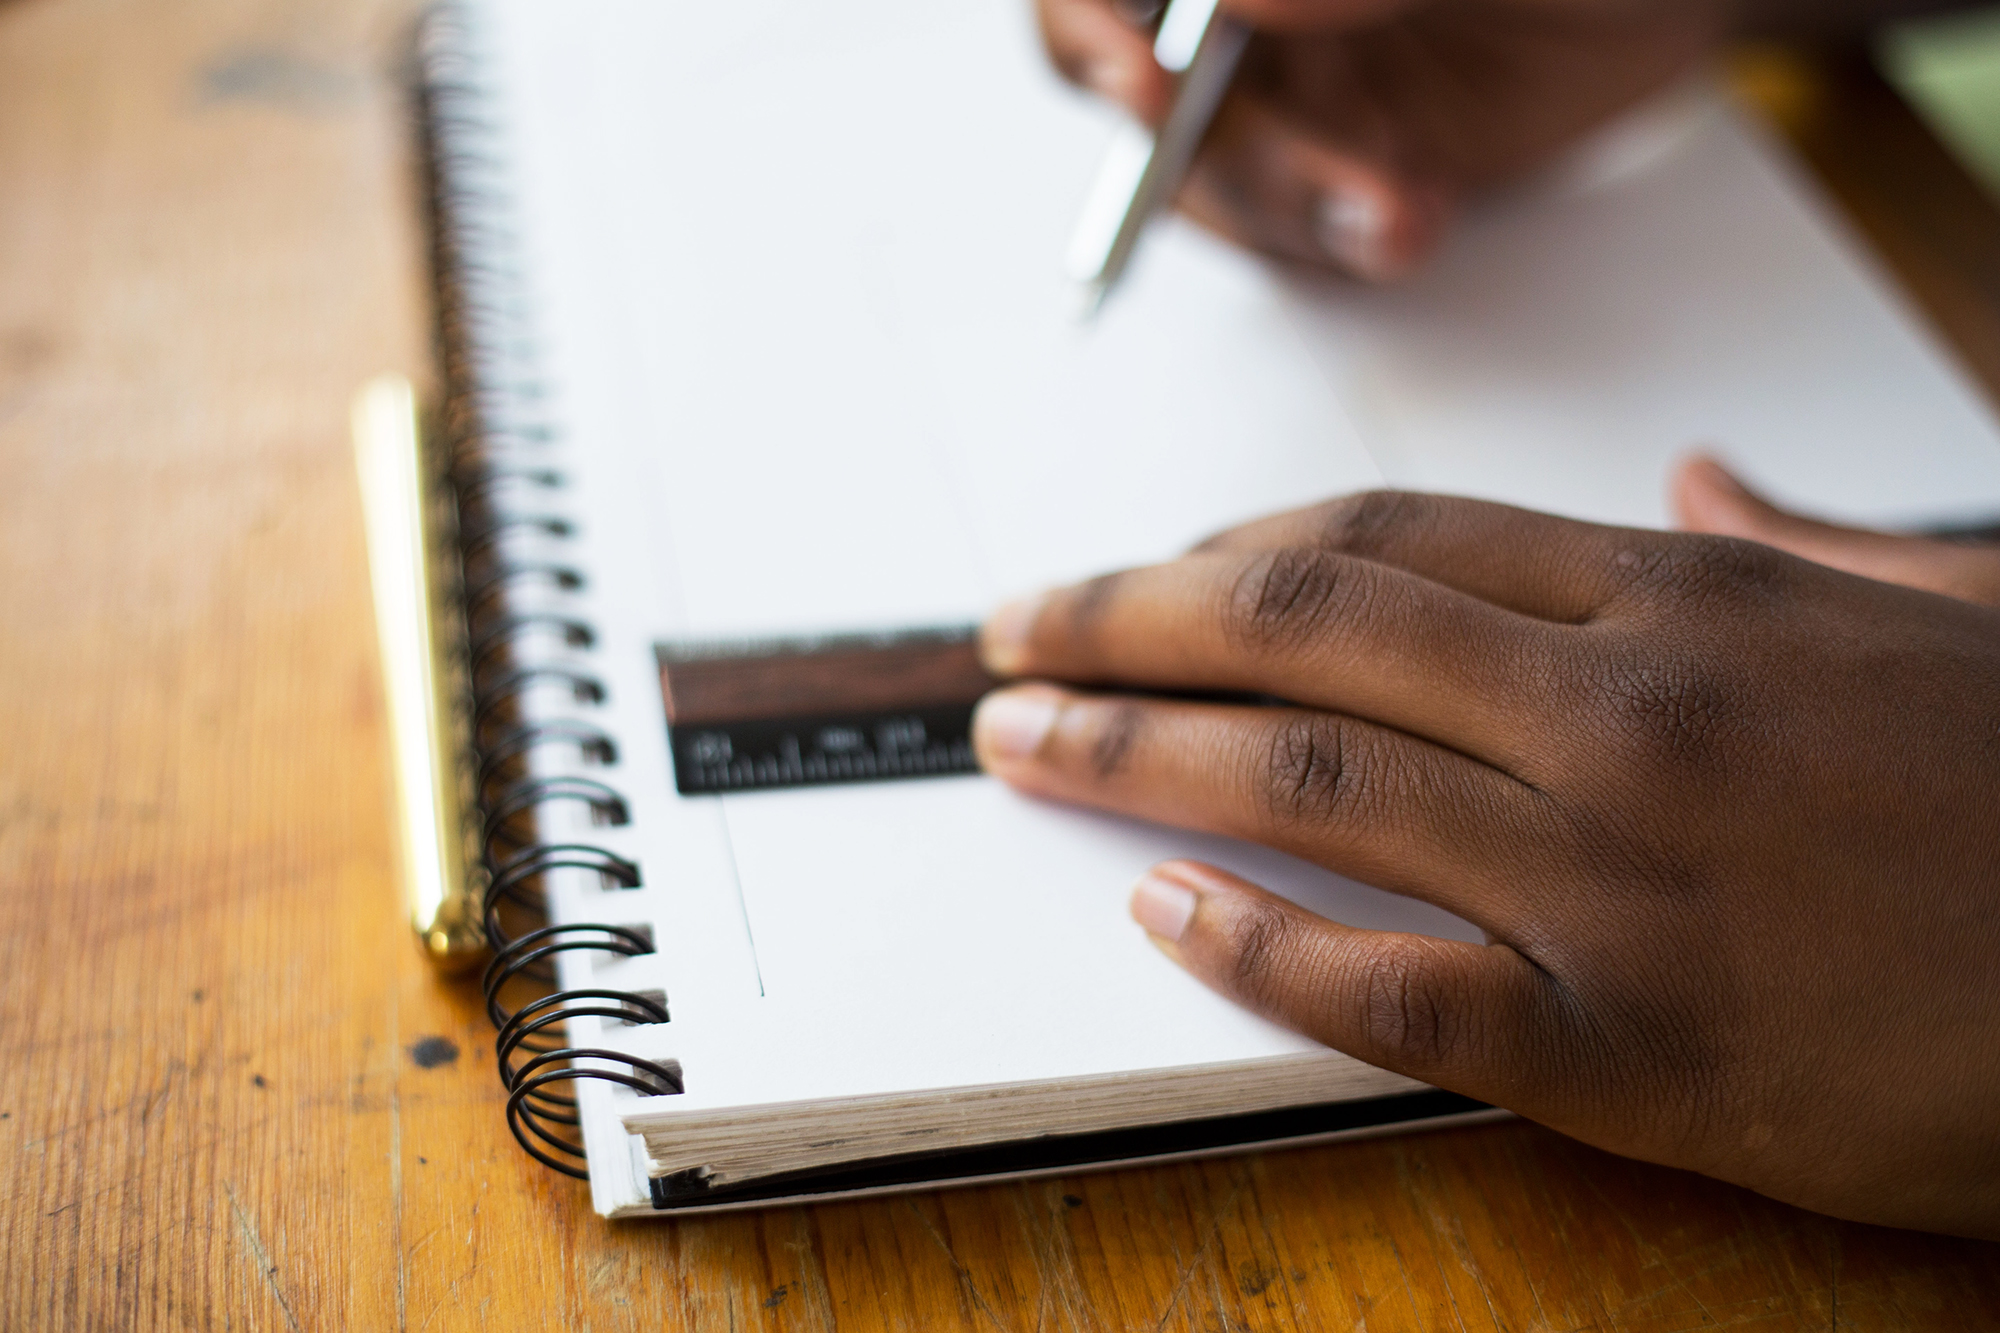 A teen's hands are shown drawing lines in a sketchbook with a pencil and ruler.